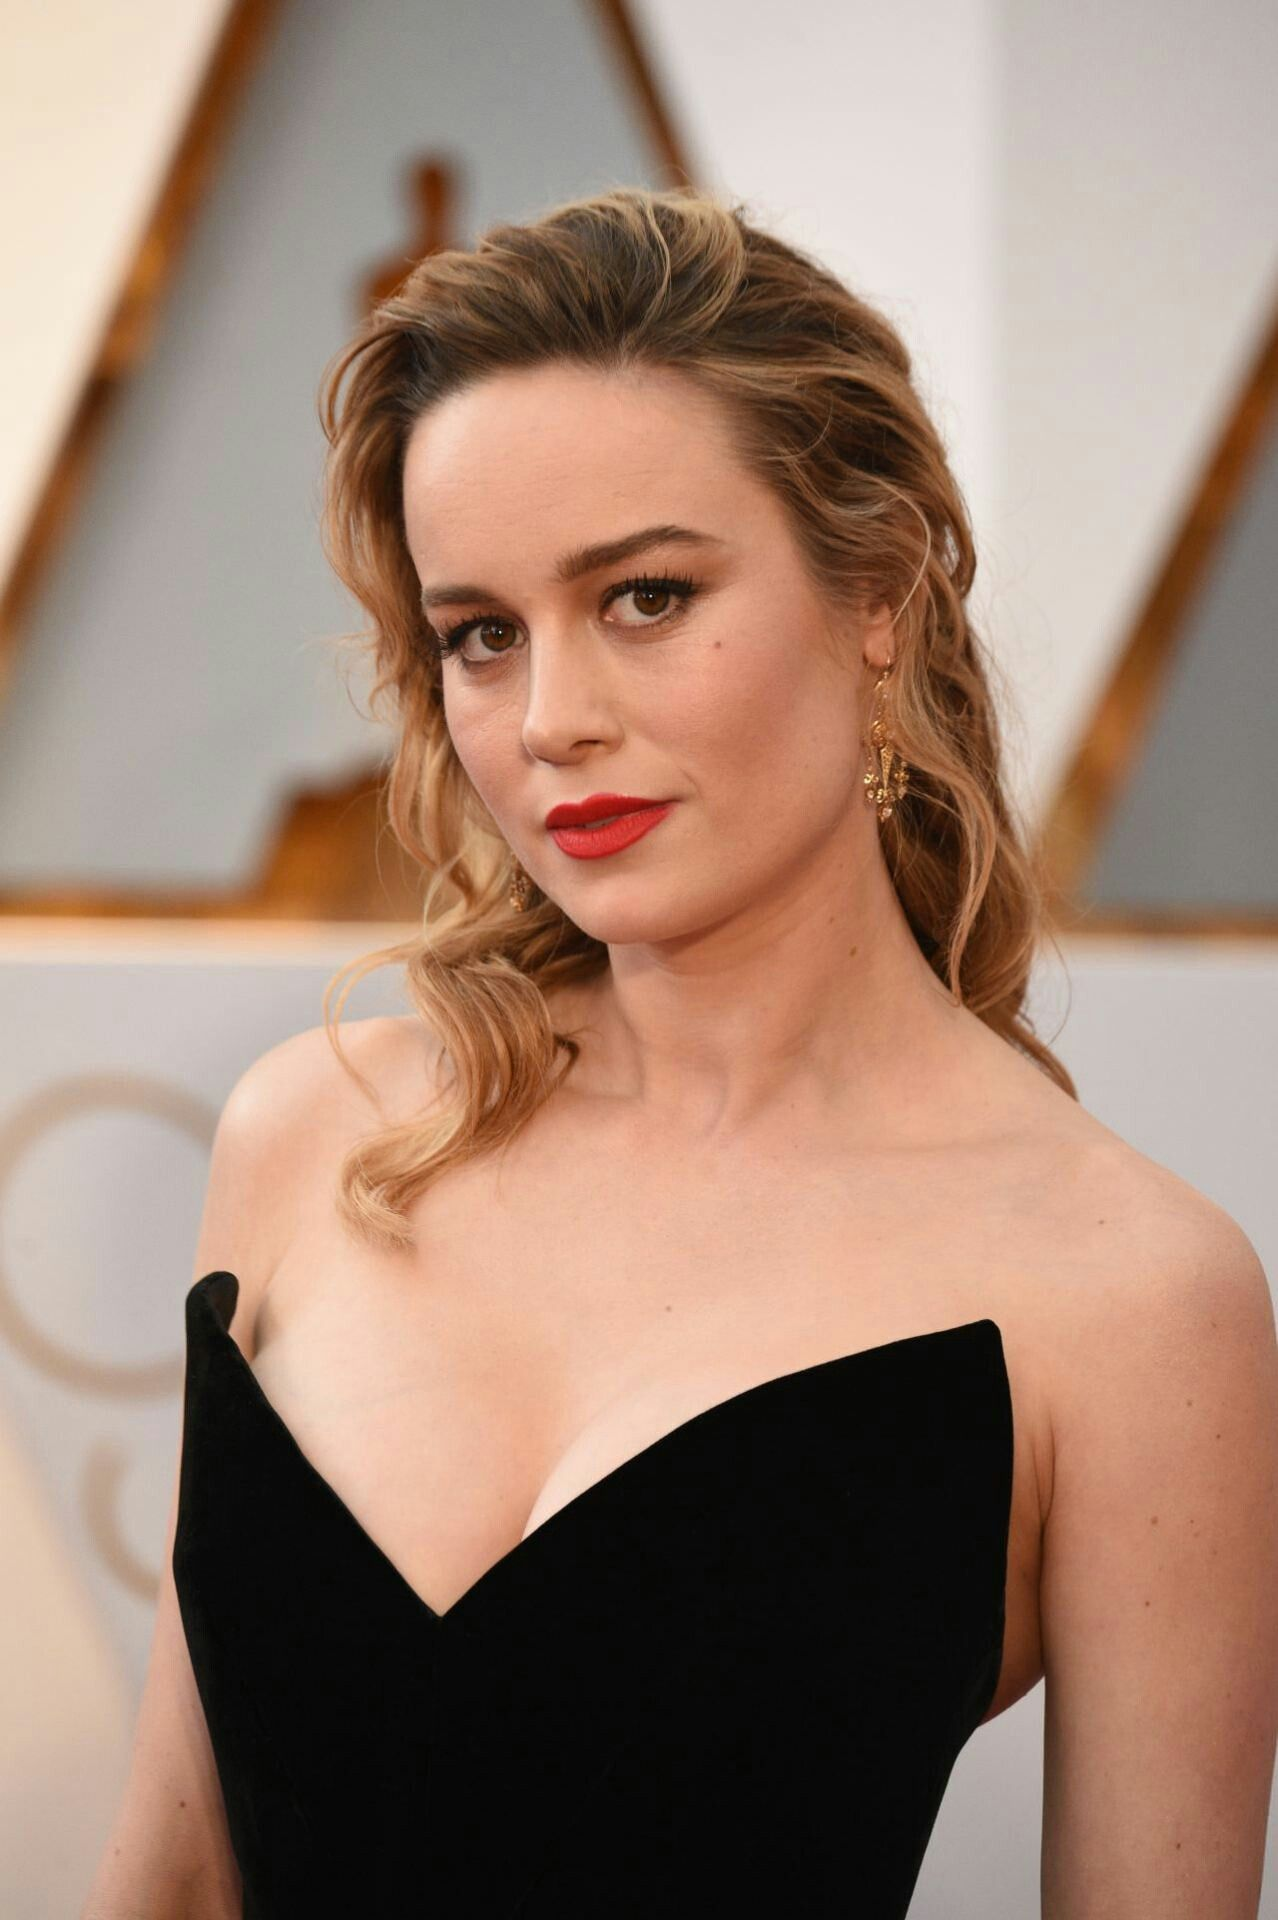 photo Brie Larson Braless. 2018-2019 celebrityes photos leaks!